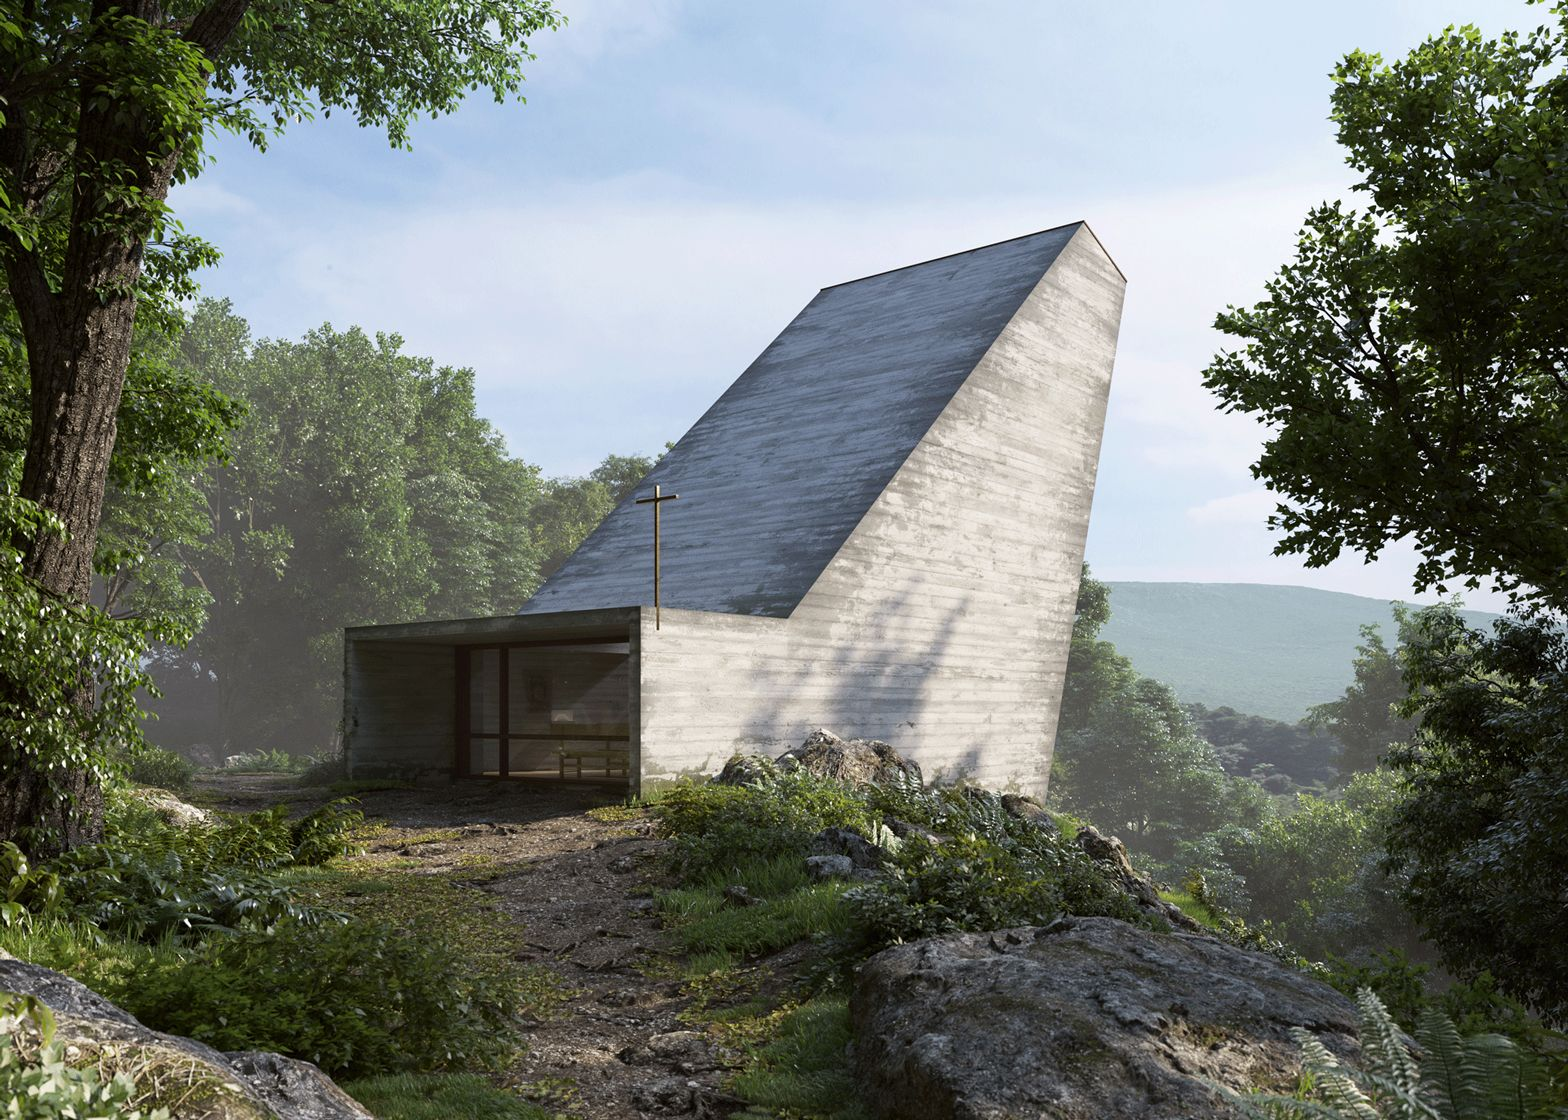 Best Images About Swiss Architecture On Pinterest Villas - Swiss home design